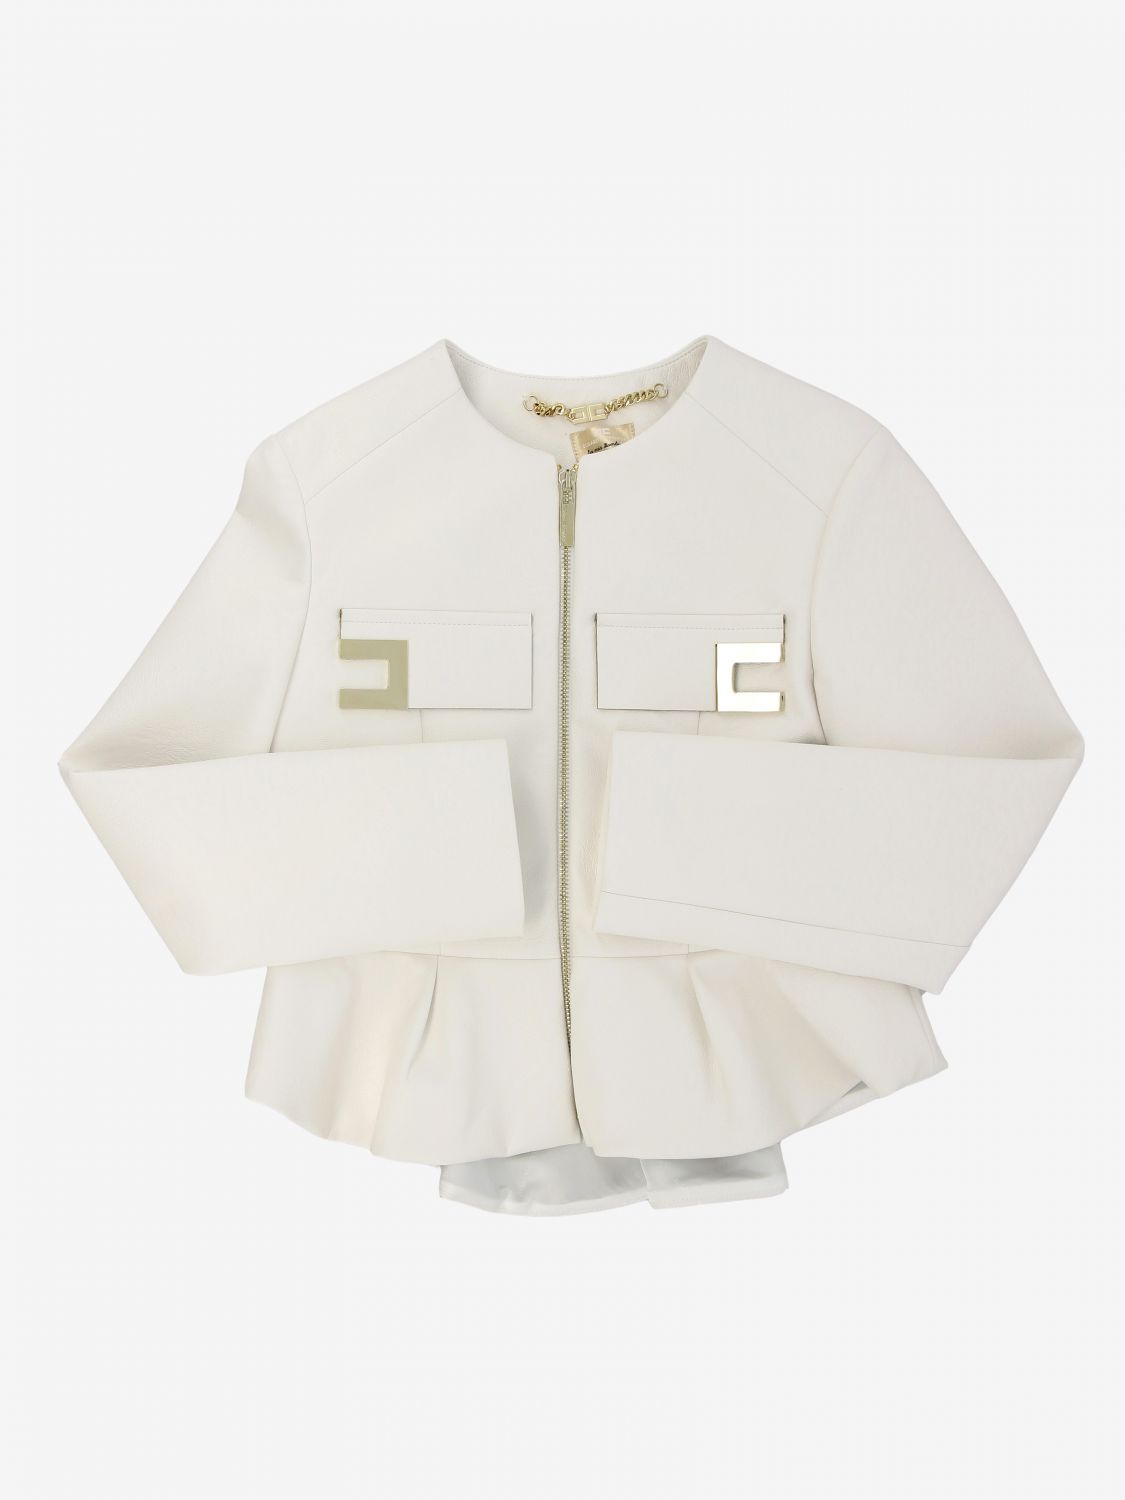 Elisabetta franchi jacket in synthetic leather with logo ivory 1